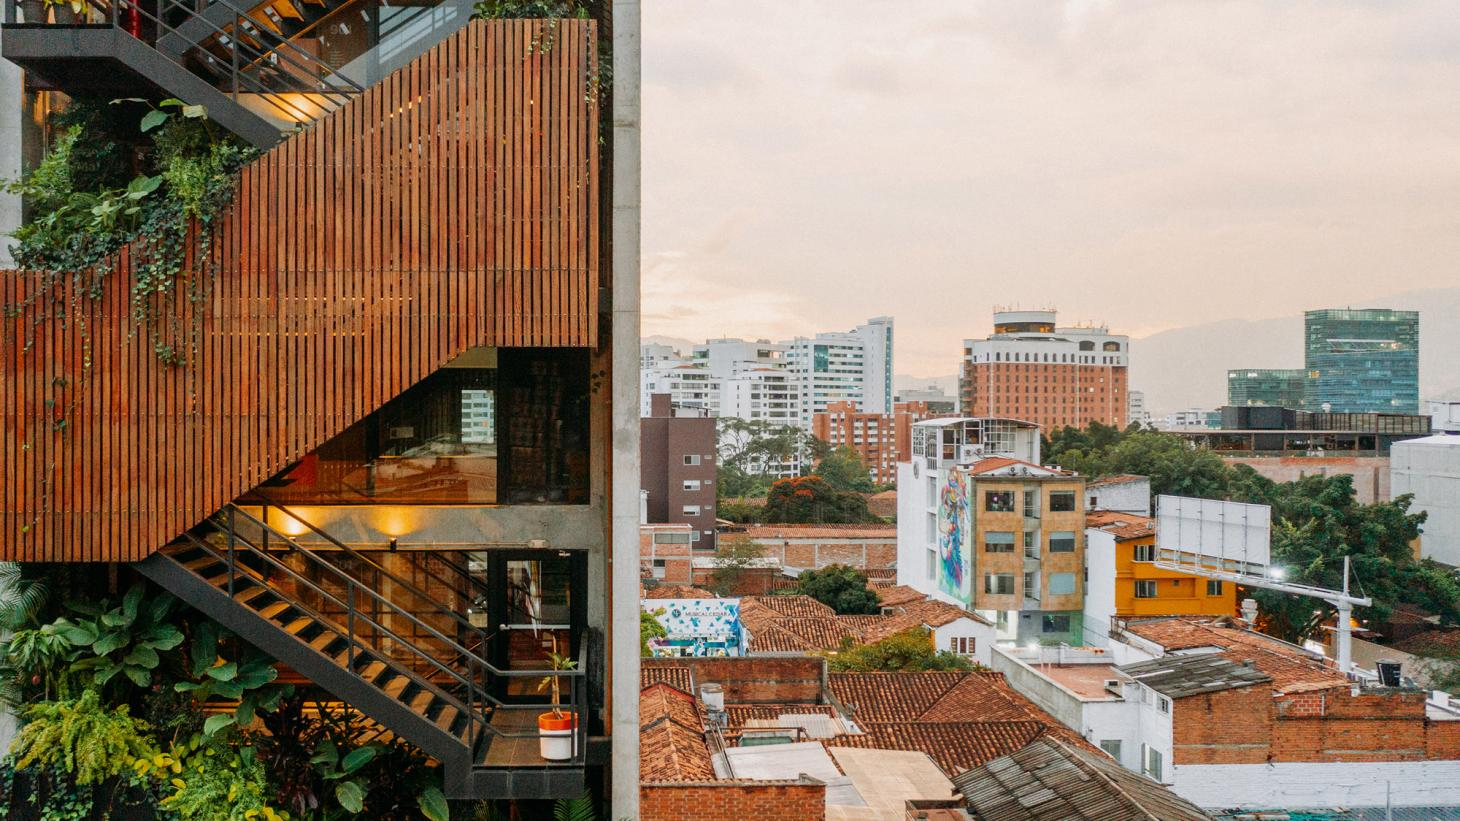 view of Medellin and its new green architecture